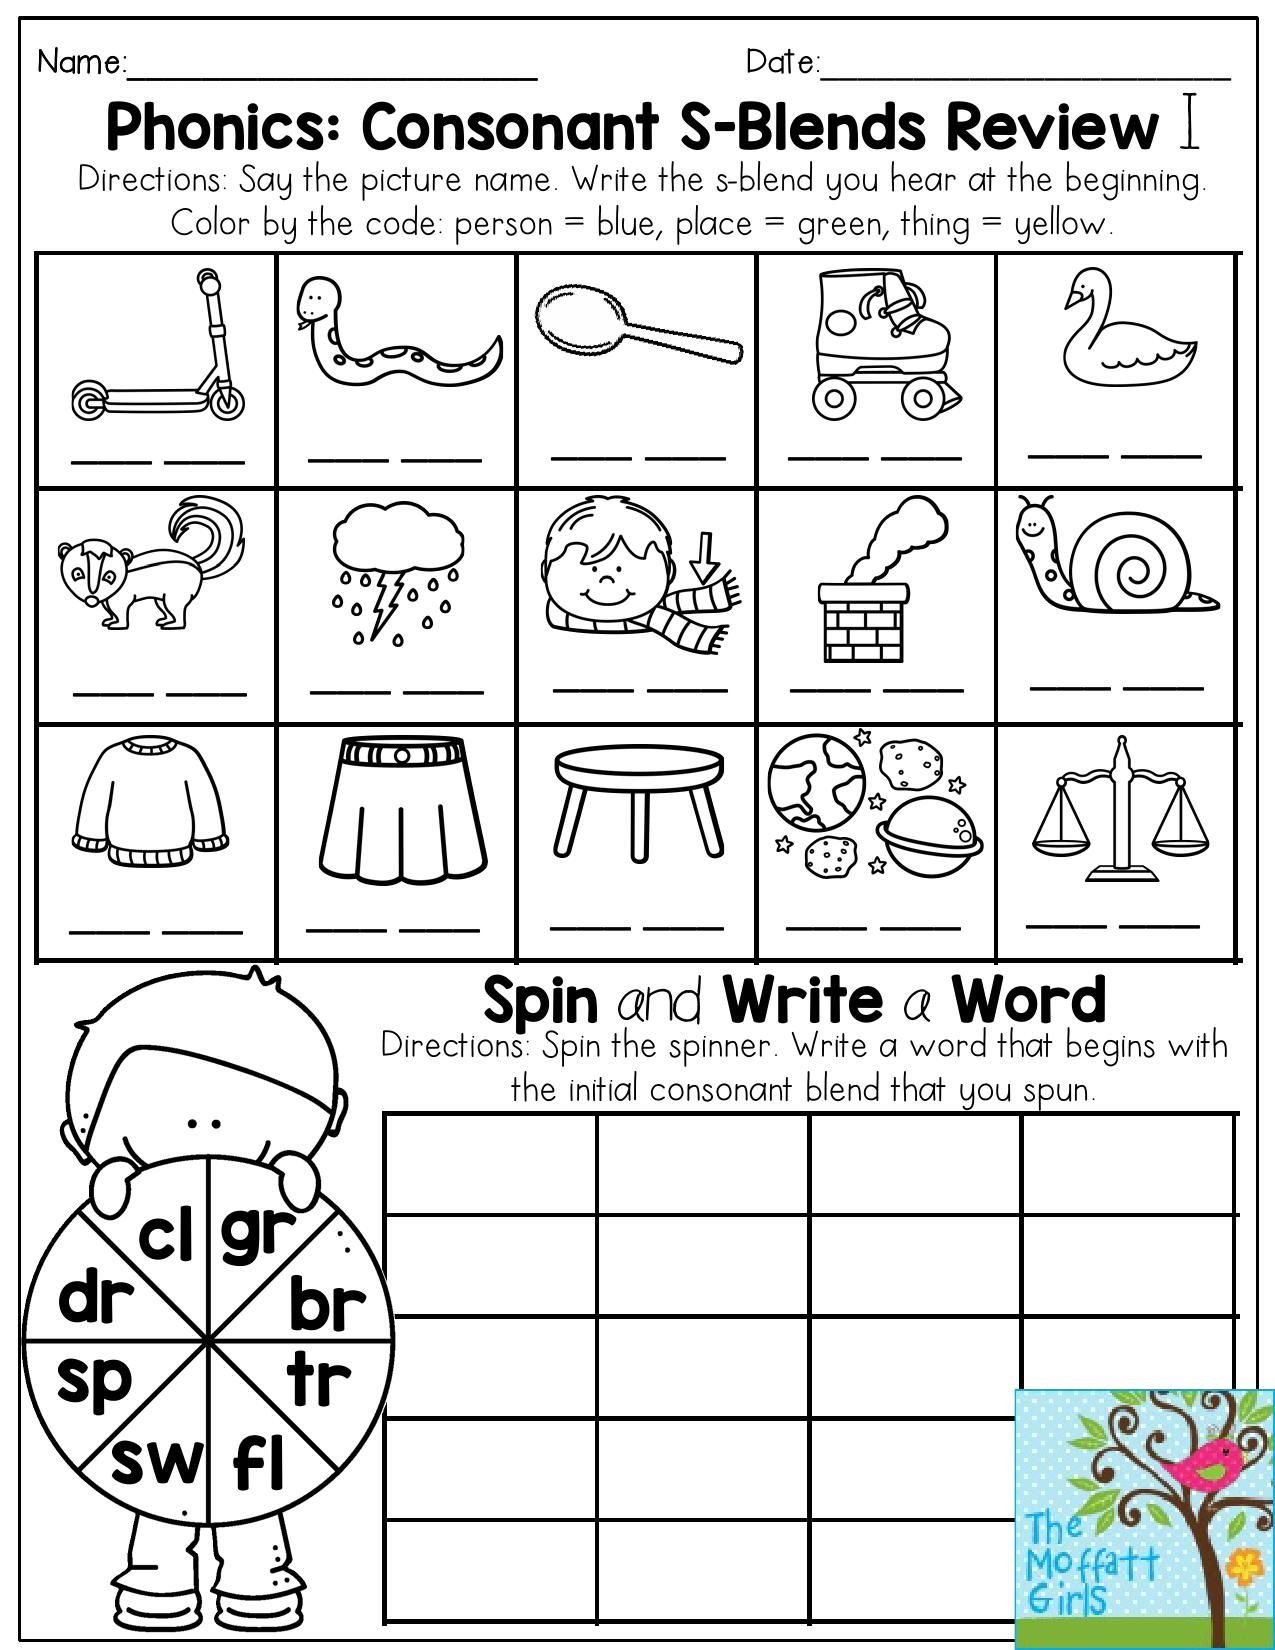 S Blend Worksheets Phonics Consonant S Blends Review Write the S Blend that